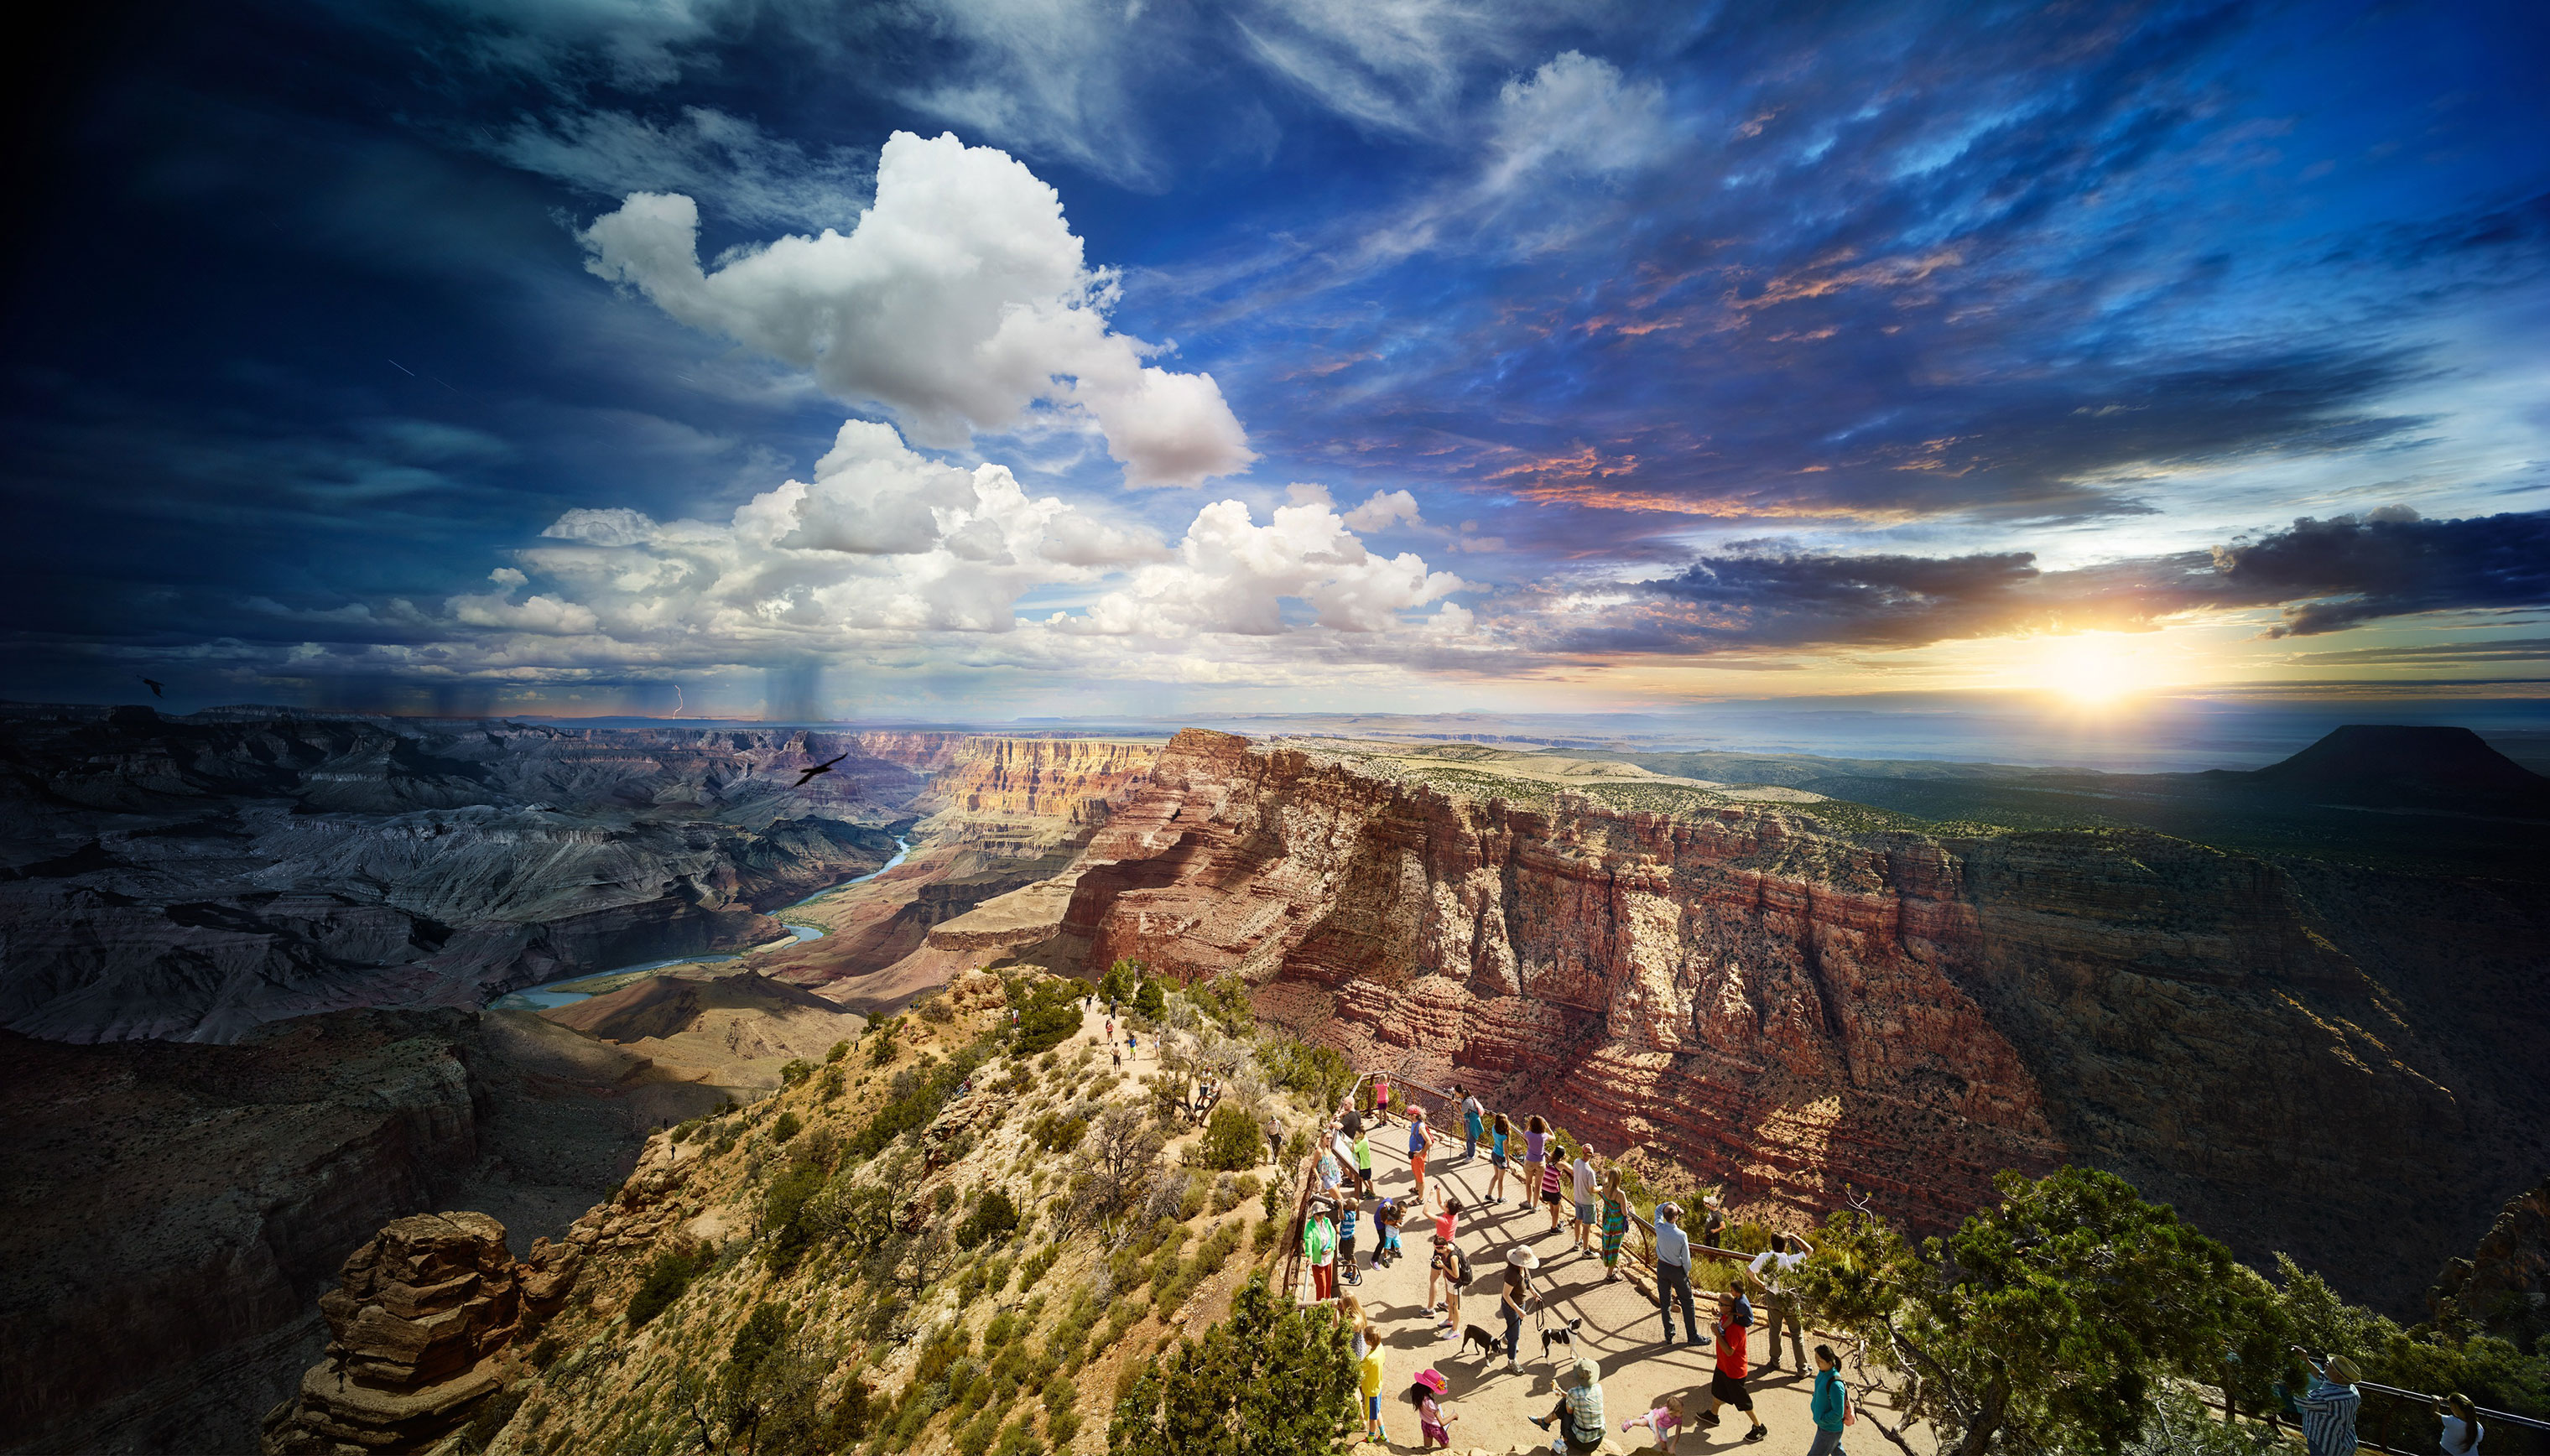 An American icon is depicted through composite photography.